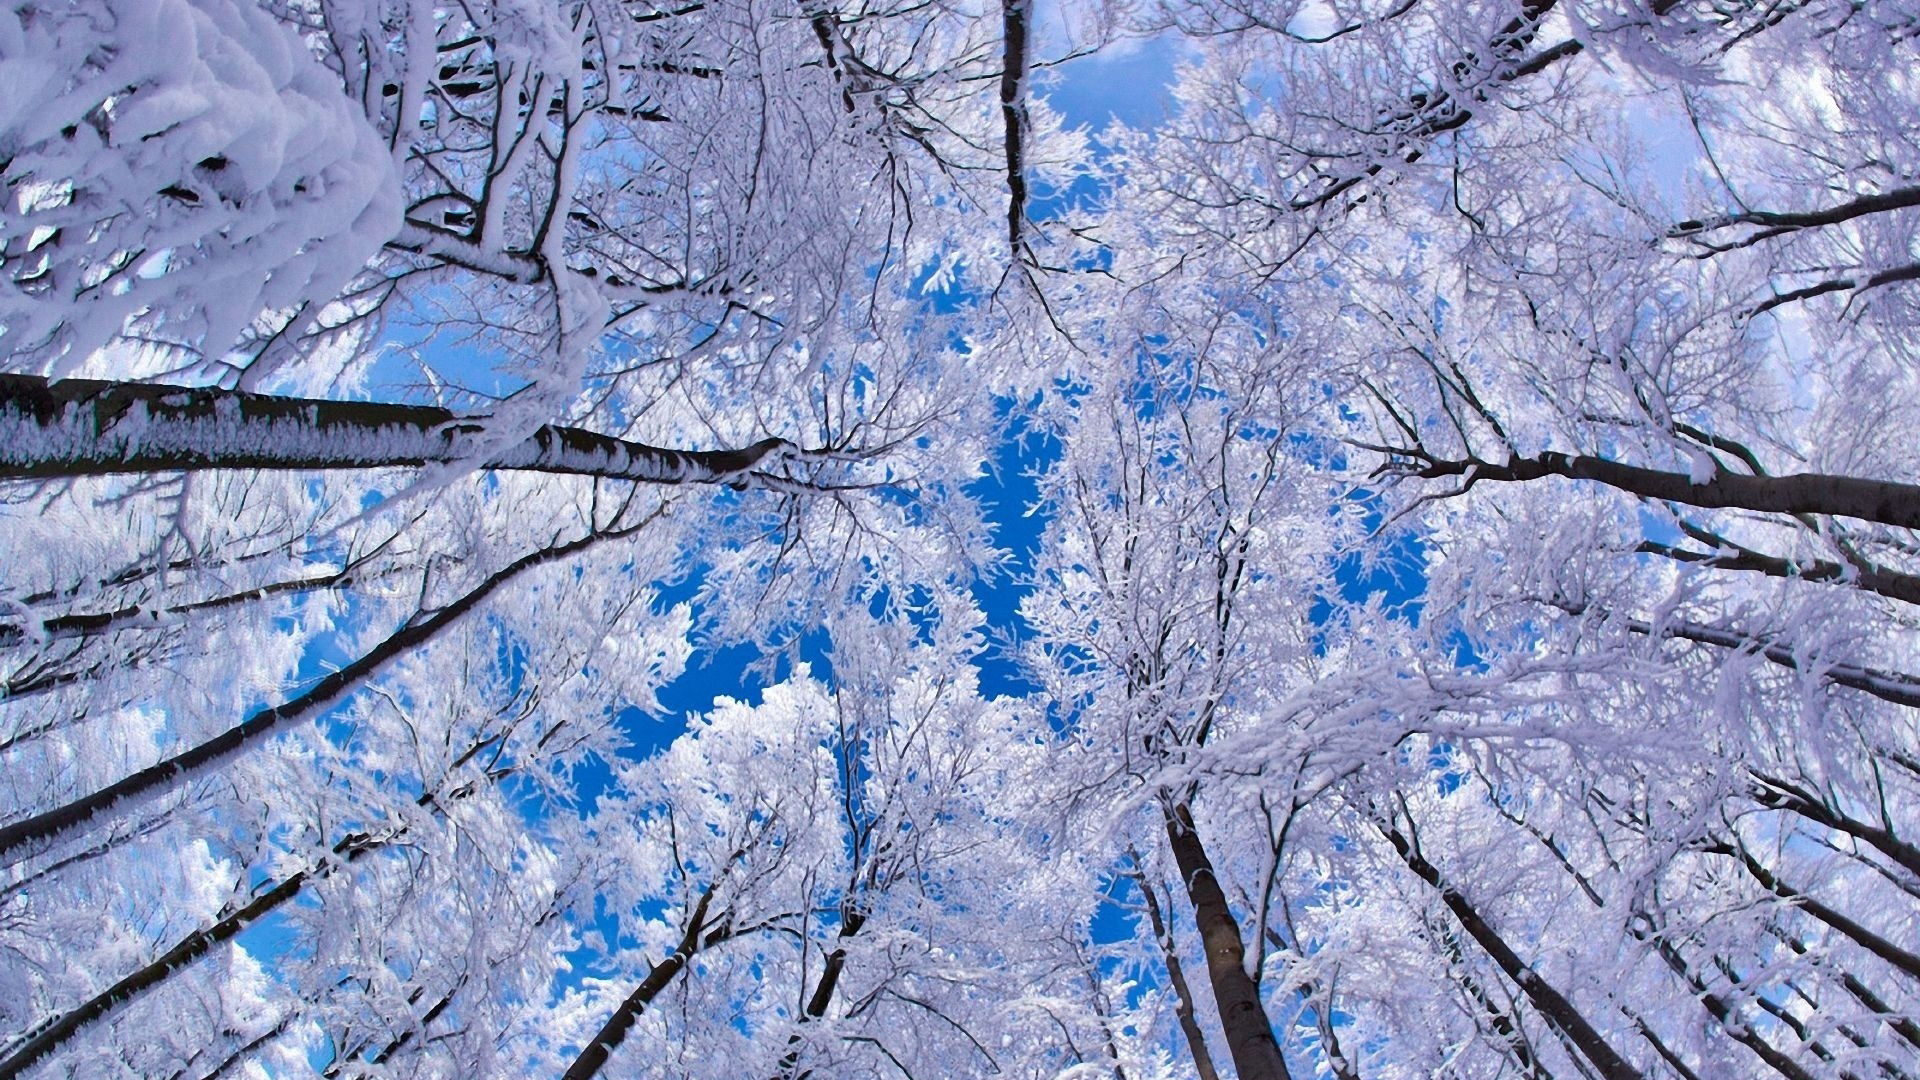 Snowy Trees And Blue Sky Hd Wallpaper Hd Wallpapers